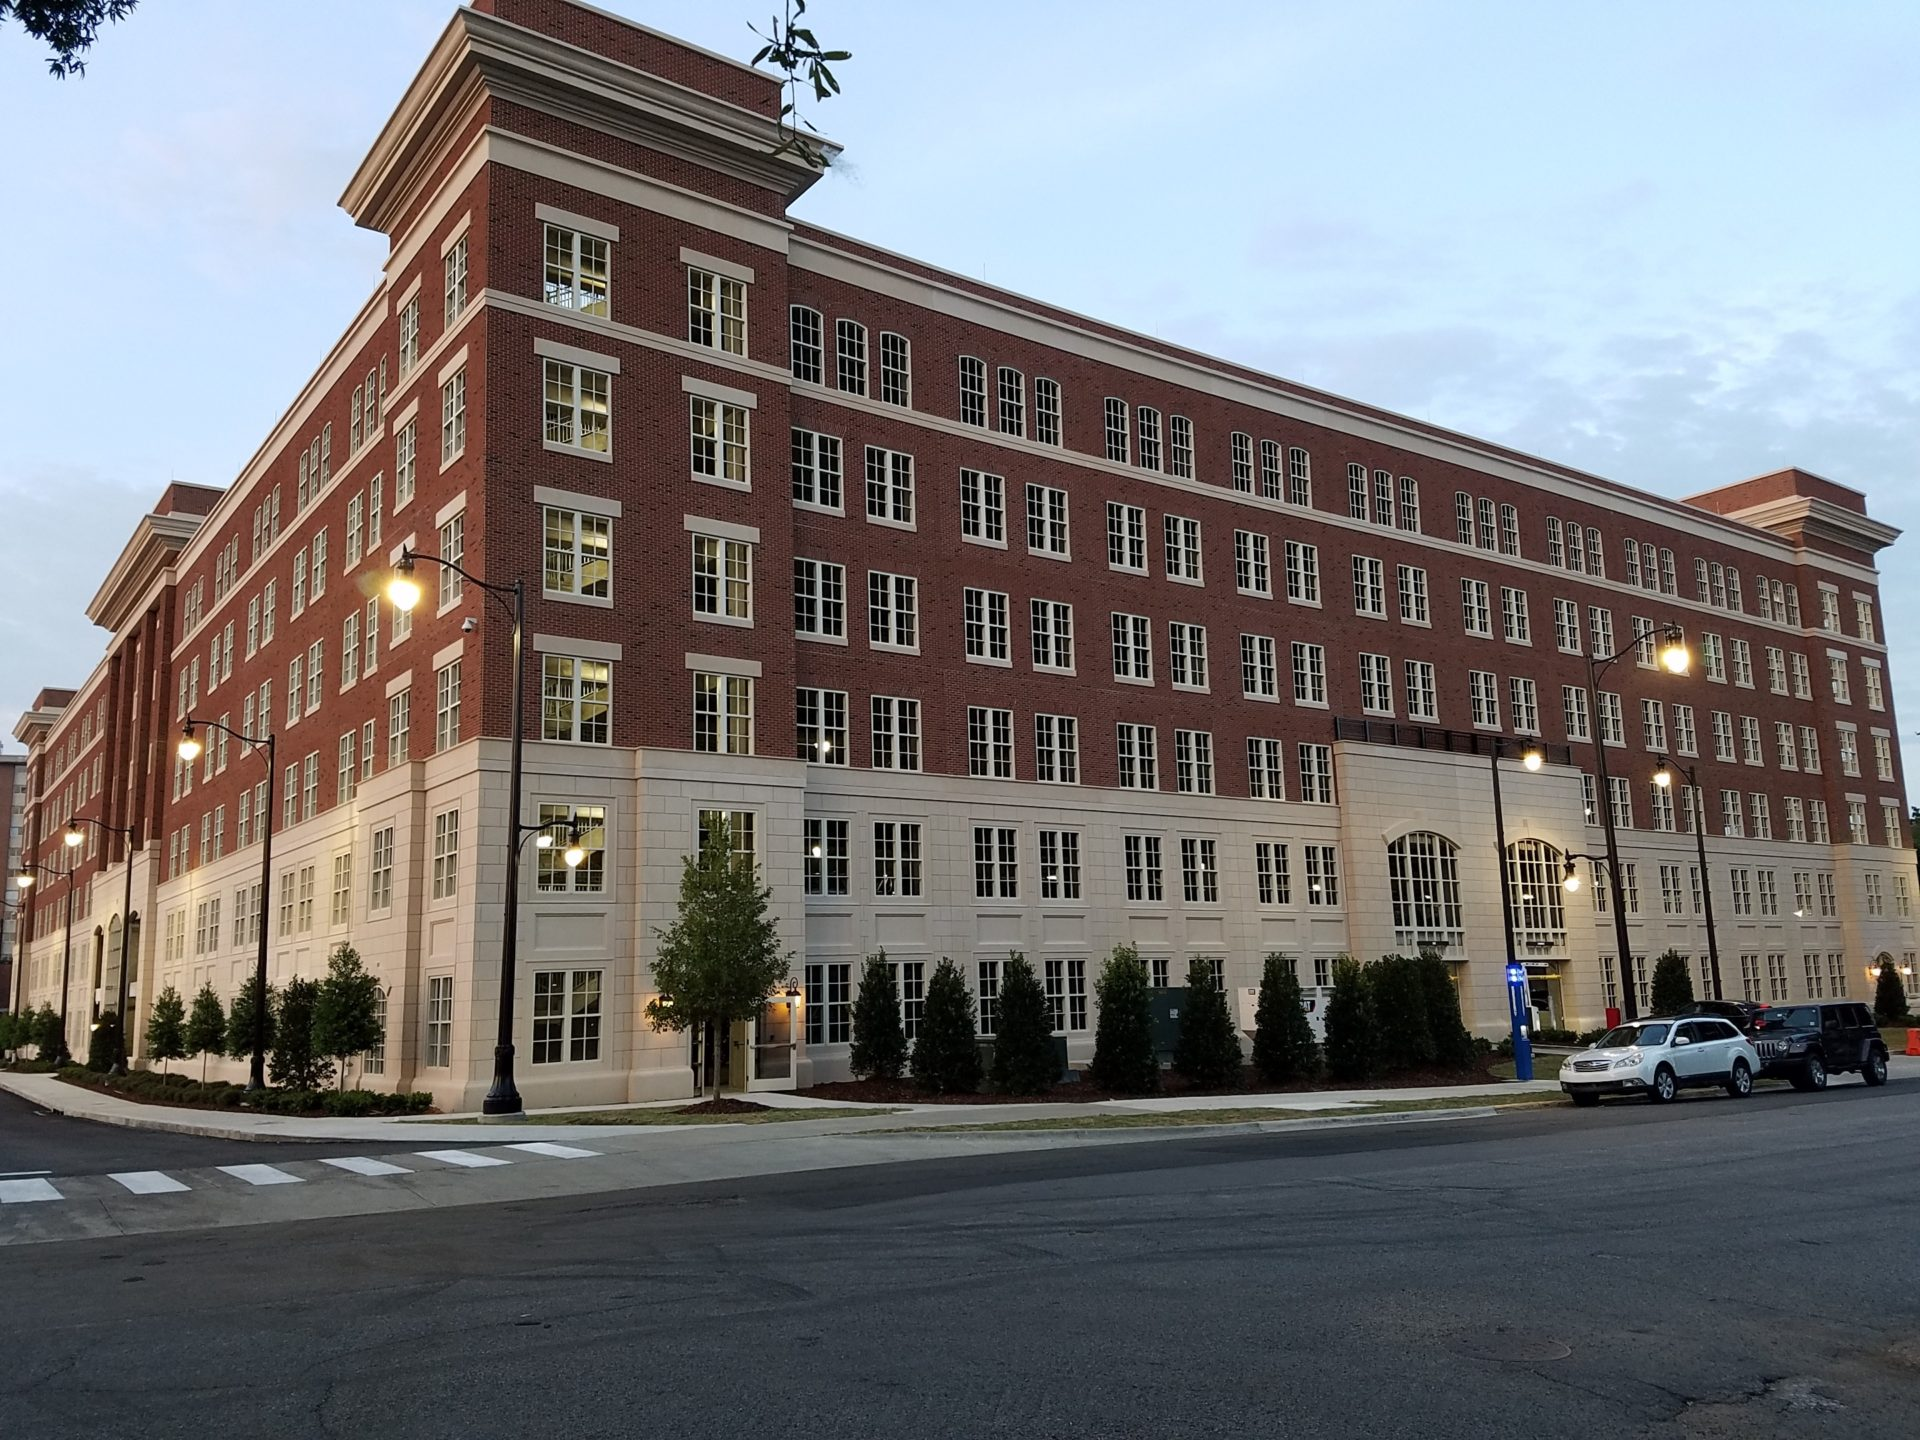 University of Alabama Parking Deck, Tuscaloosa, AL – Best Parking Structure (Façade Only)